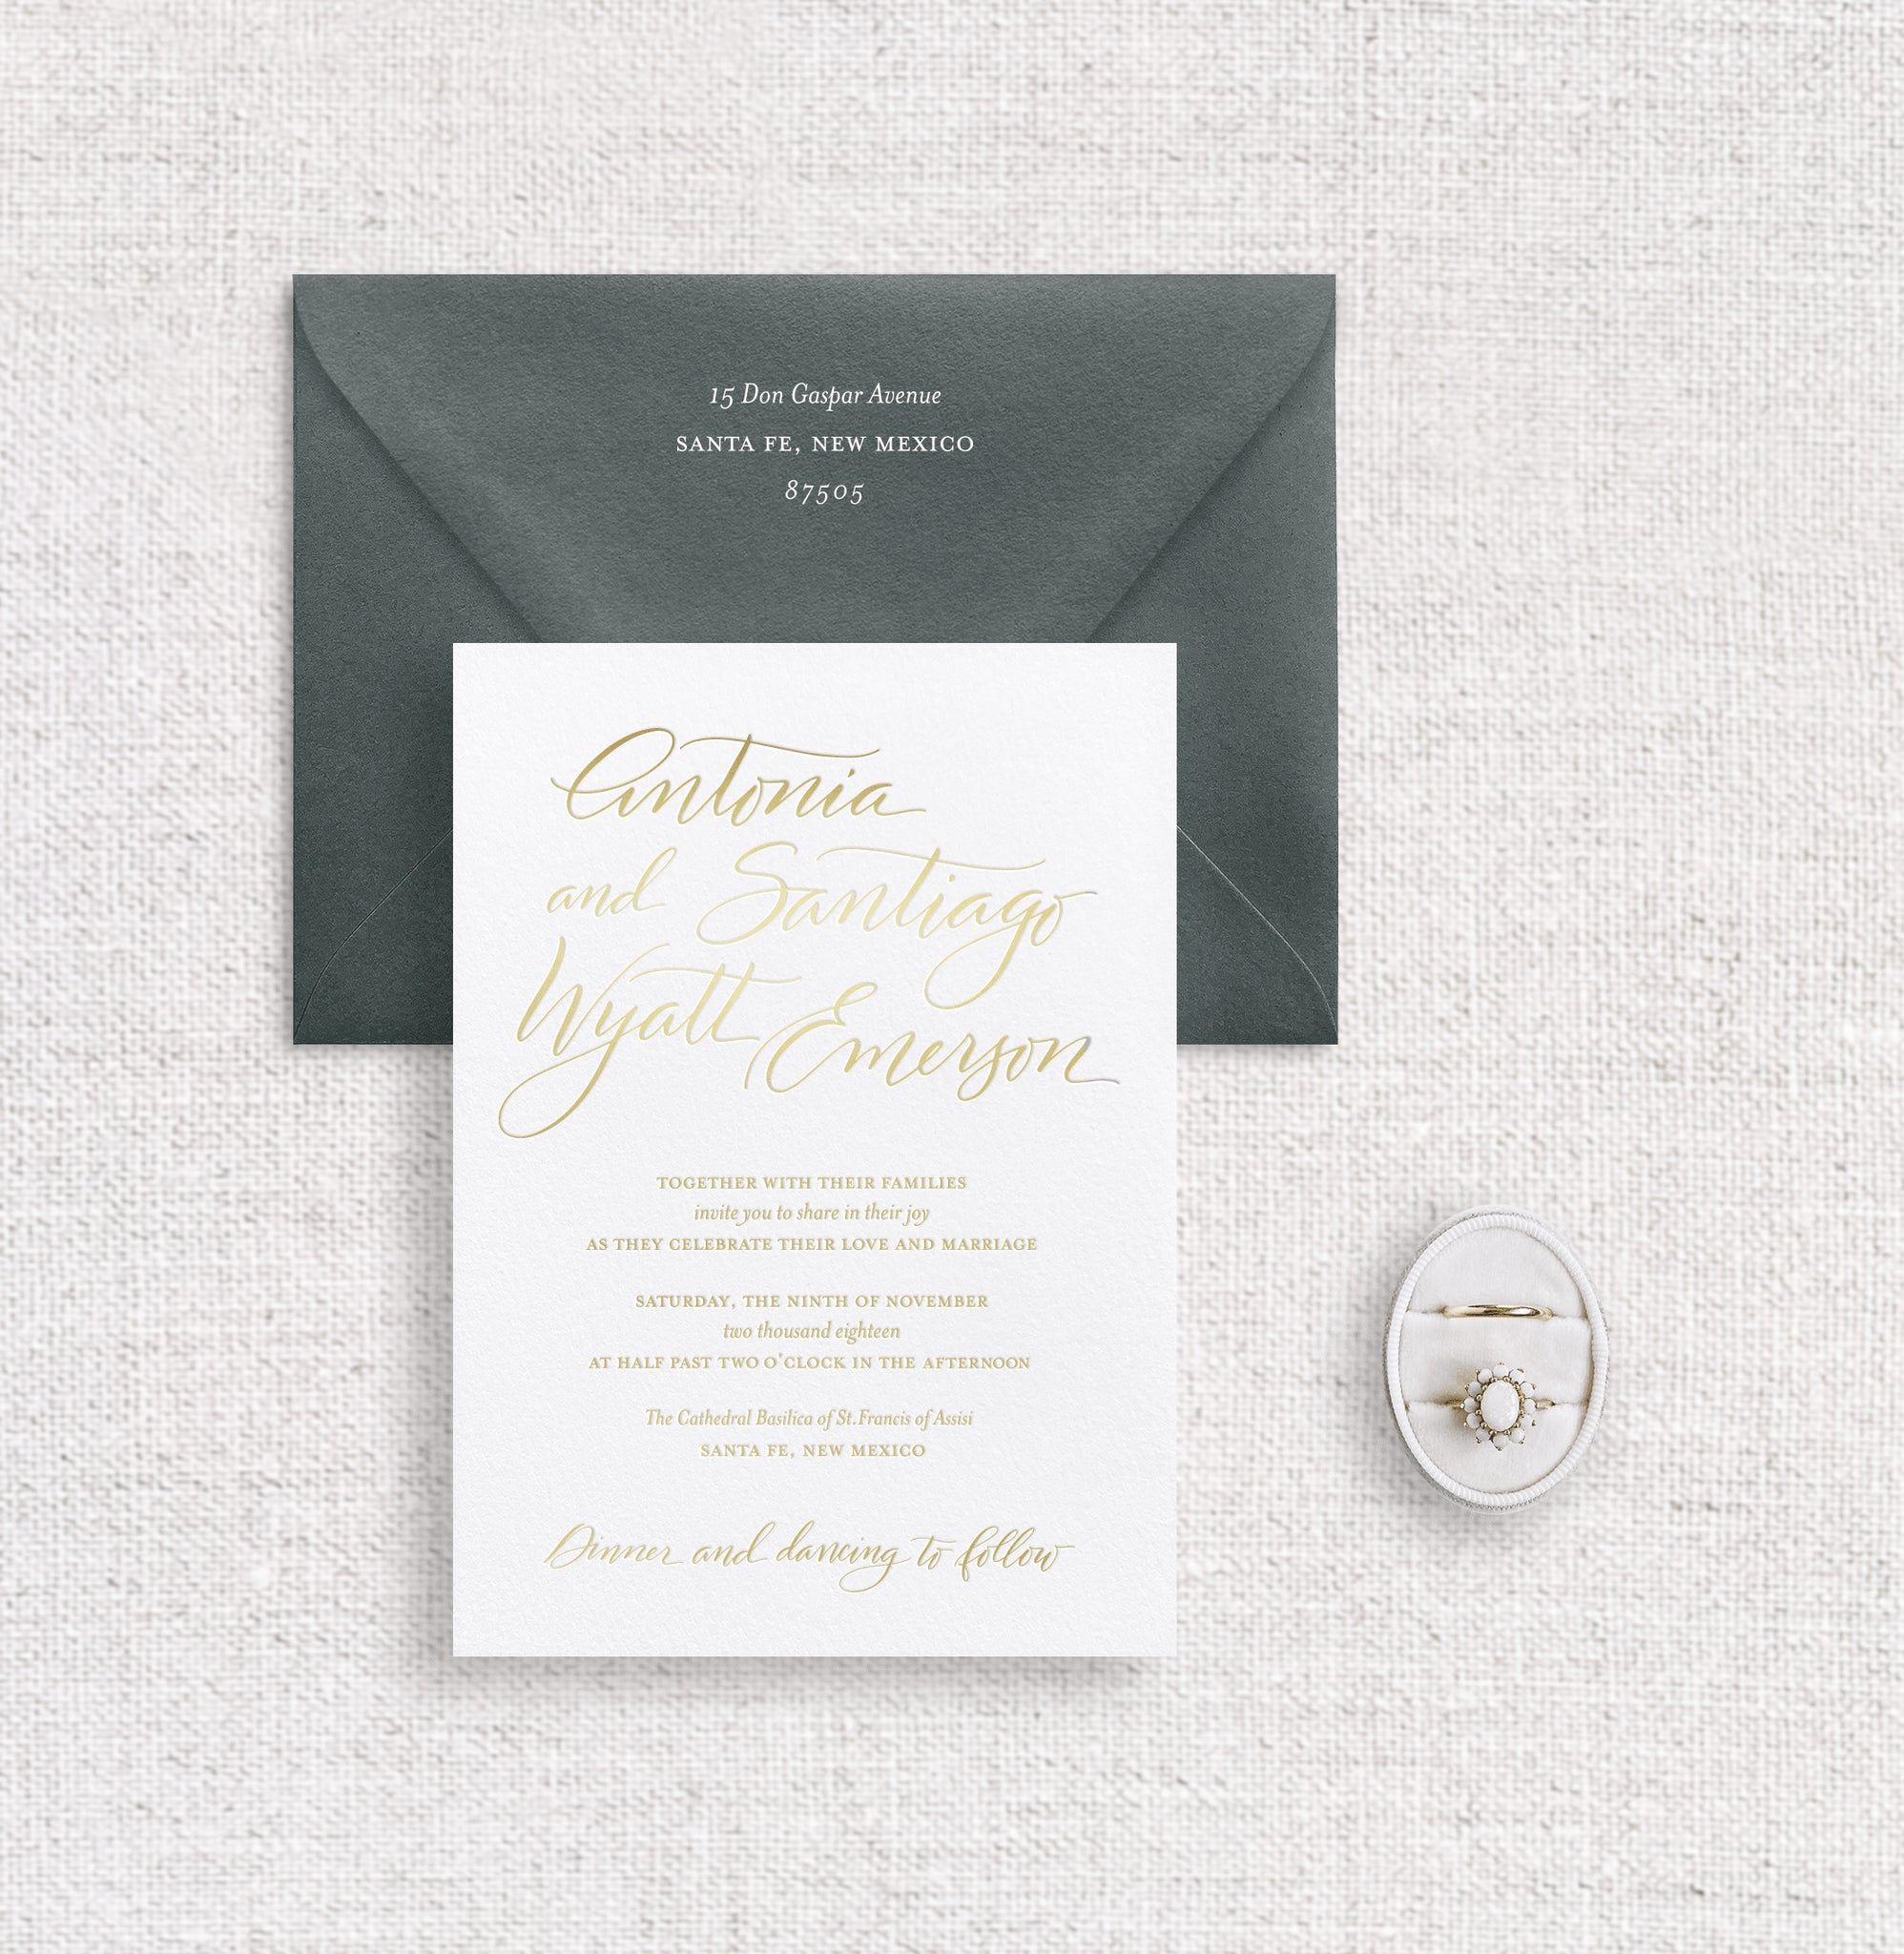 Antonia invitation foil stamped in champagne foil on white stock and racing green envelope digitally printed in white ink